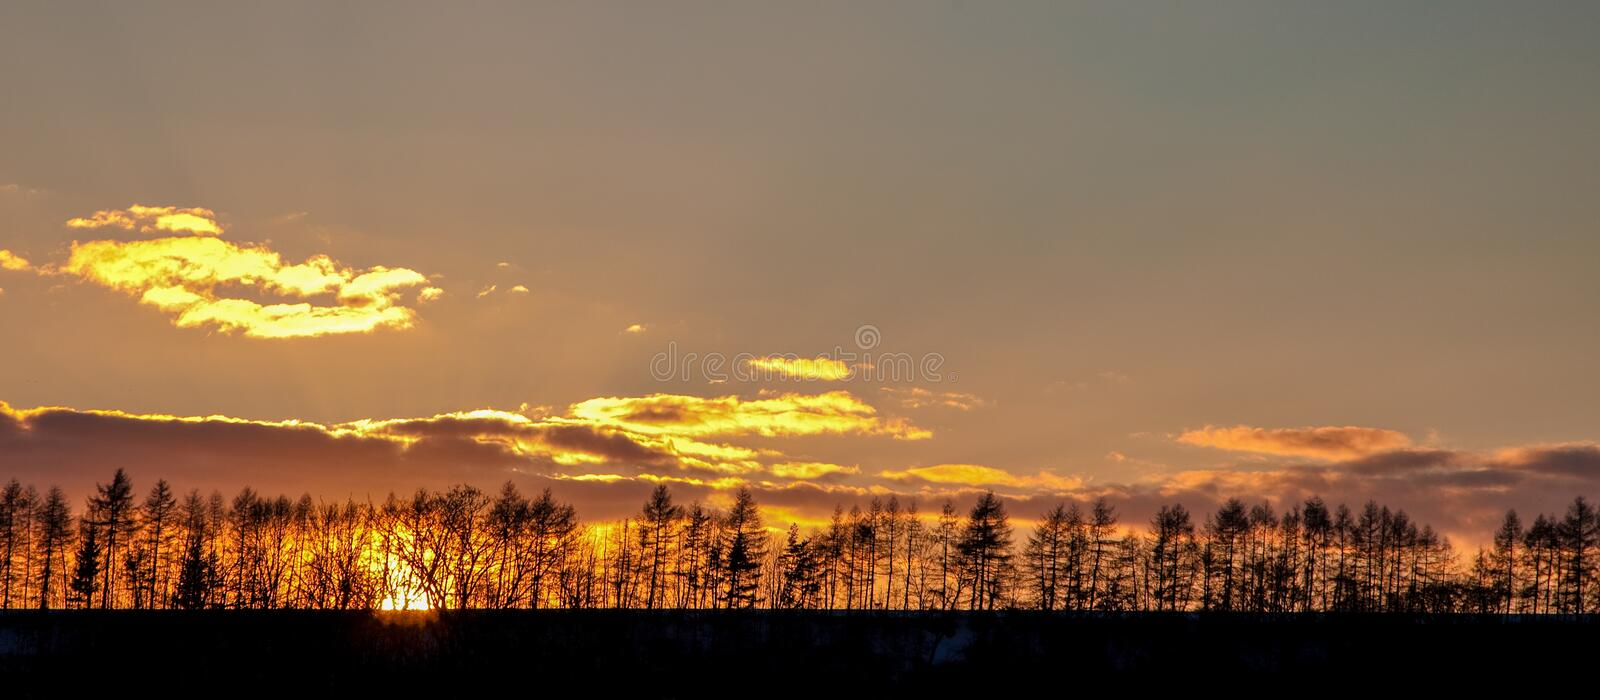 The sun setting behind a ridge of silhouetted trees stock photo